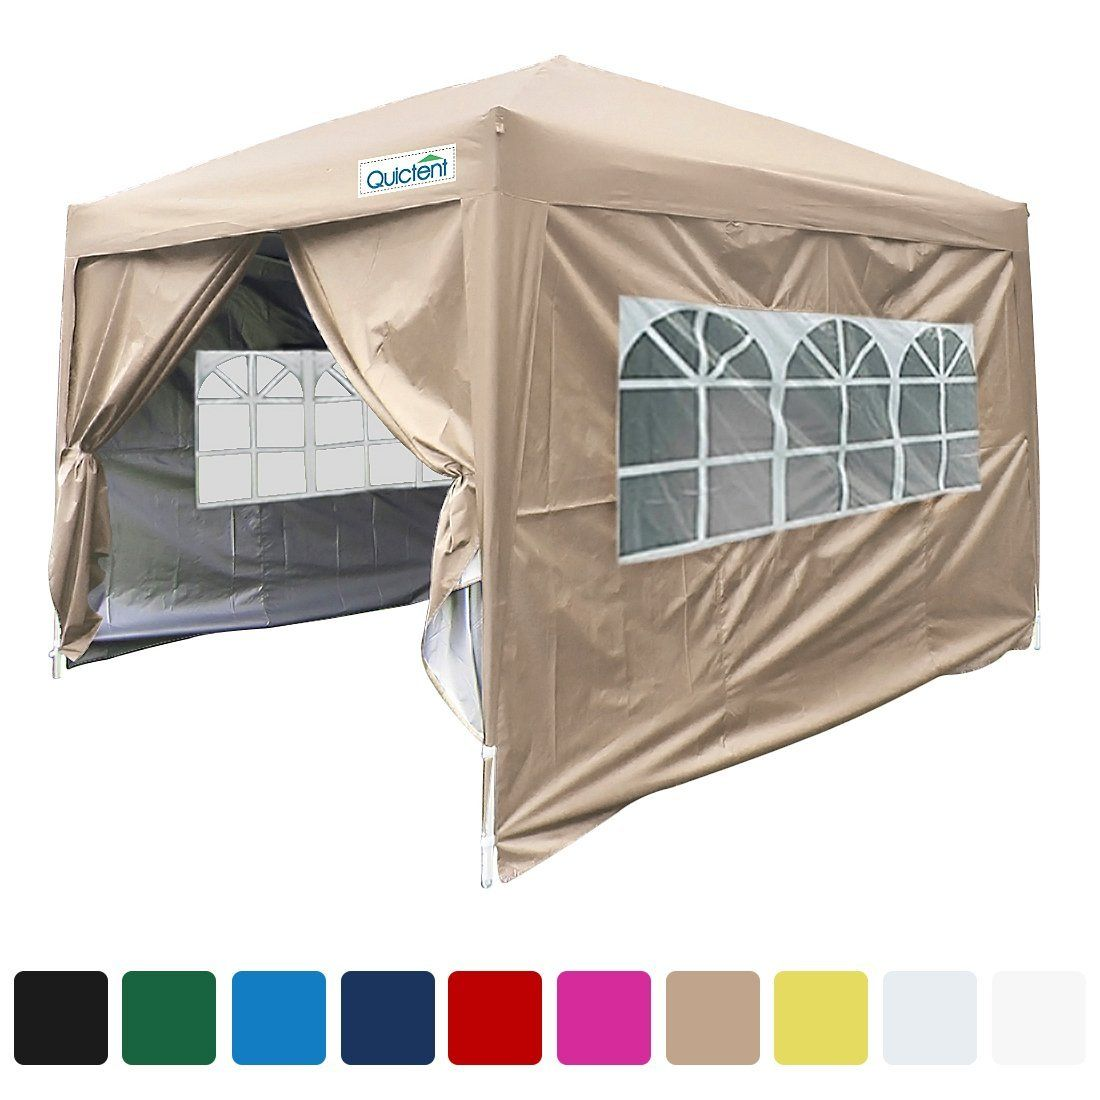 Amazon Com Quictent Silvox 8x8 Ez Pop Up Canopy Gazebo Party Tent With Carry Bag Waterproof 7 Colors Beige Patio Law Pop Up Canopy Tent Tent Party Tent